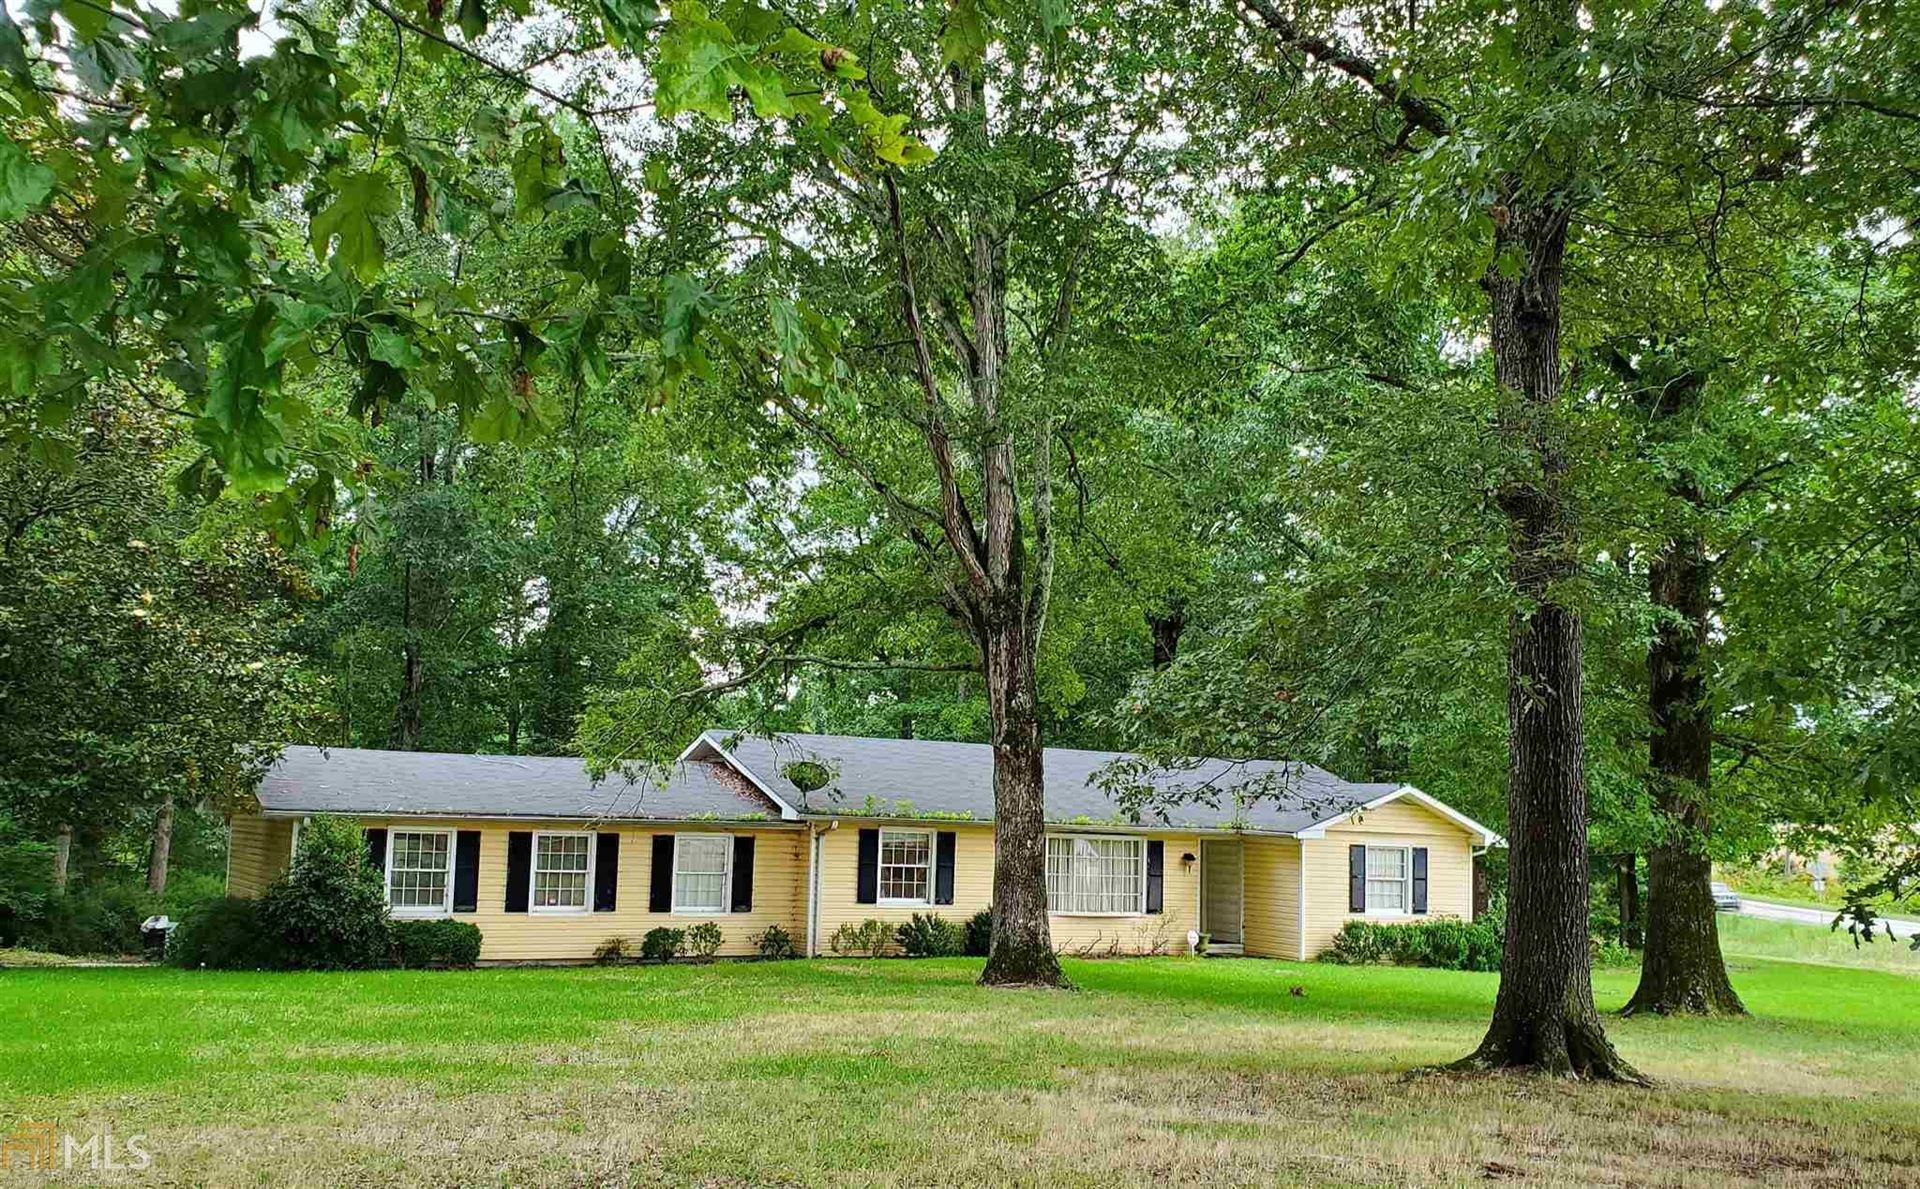 2772 Hghy 20 East, McDonough, GA 30252 - #: 8830976